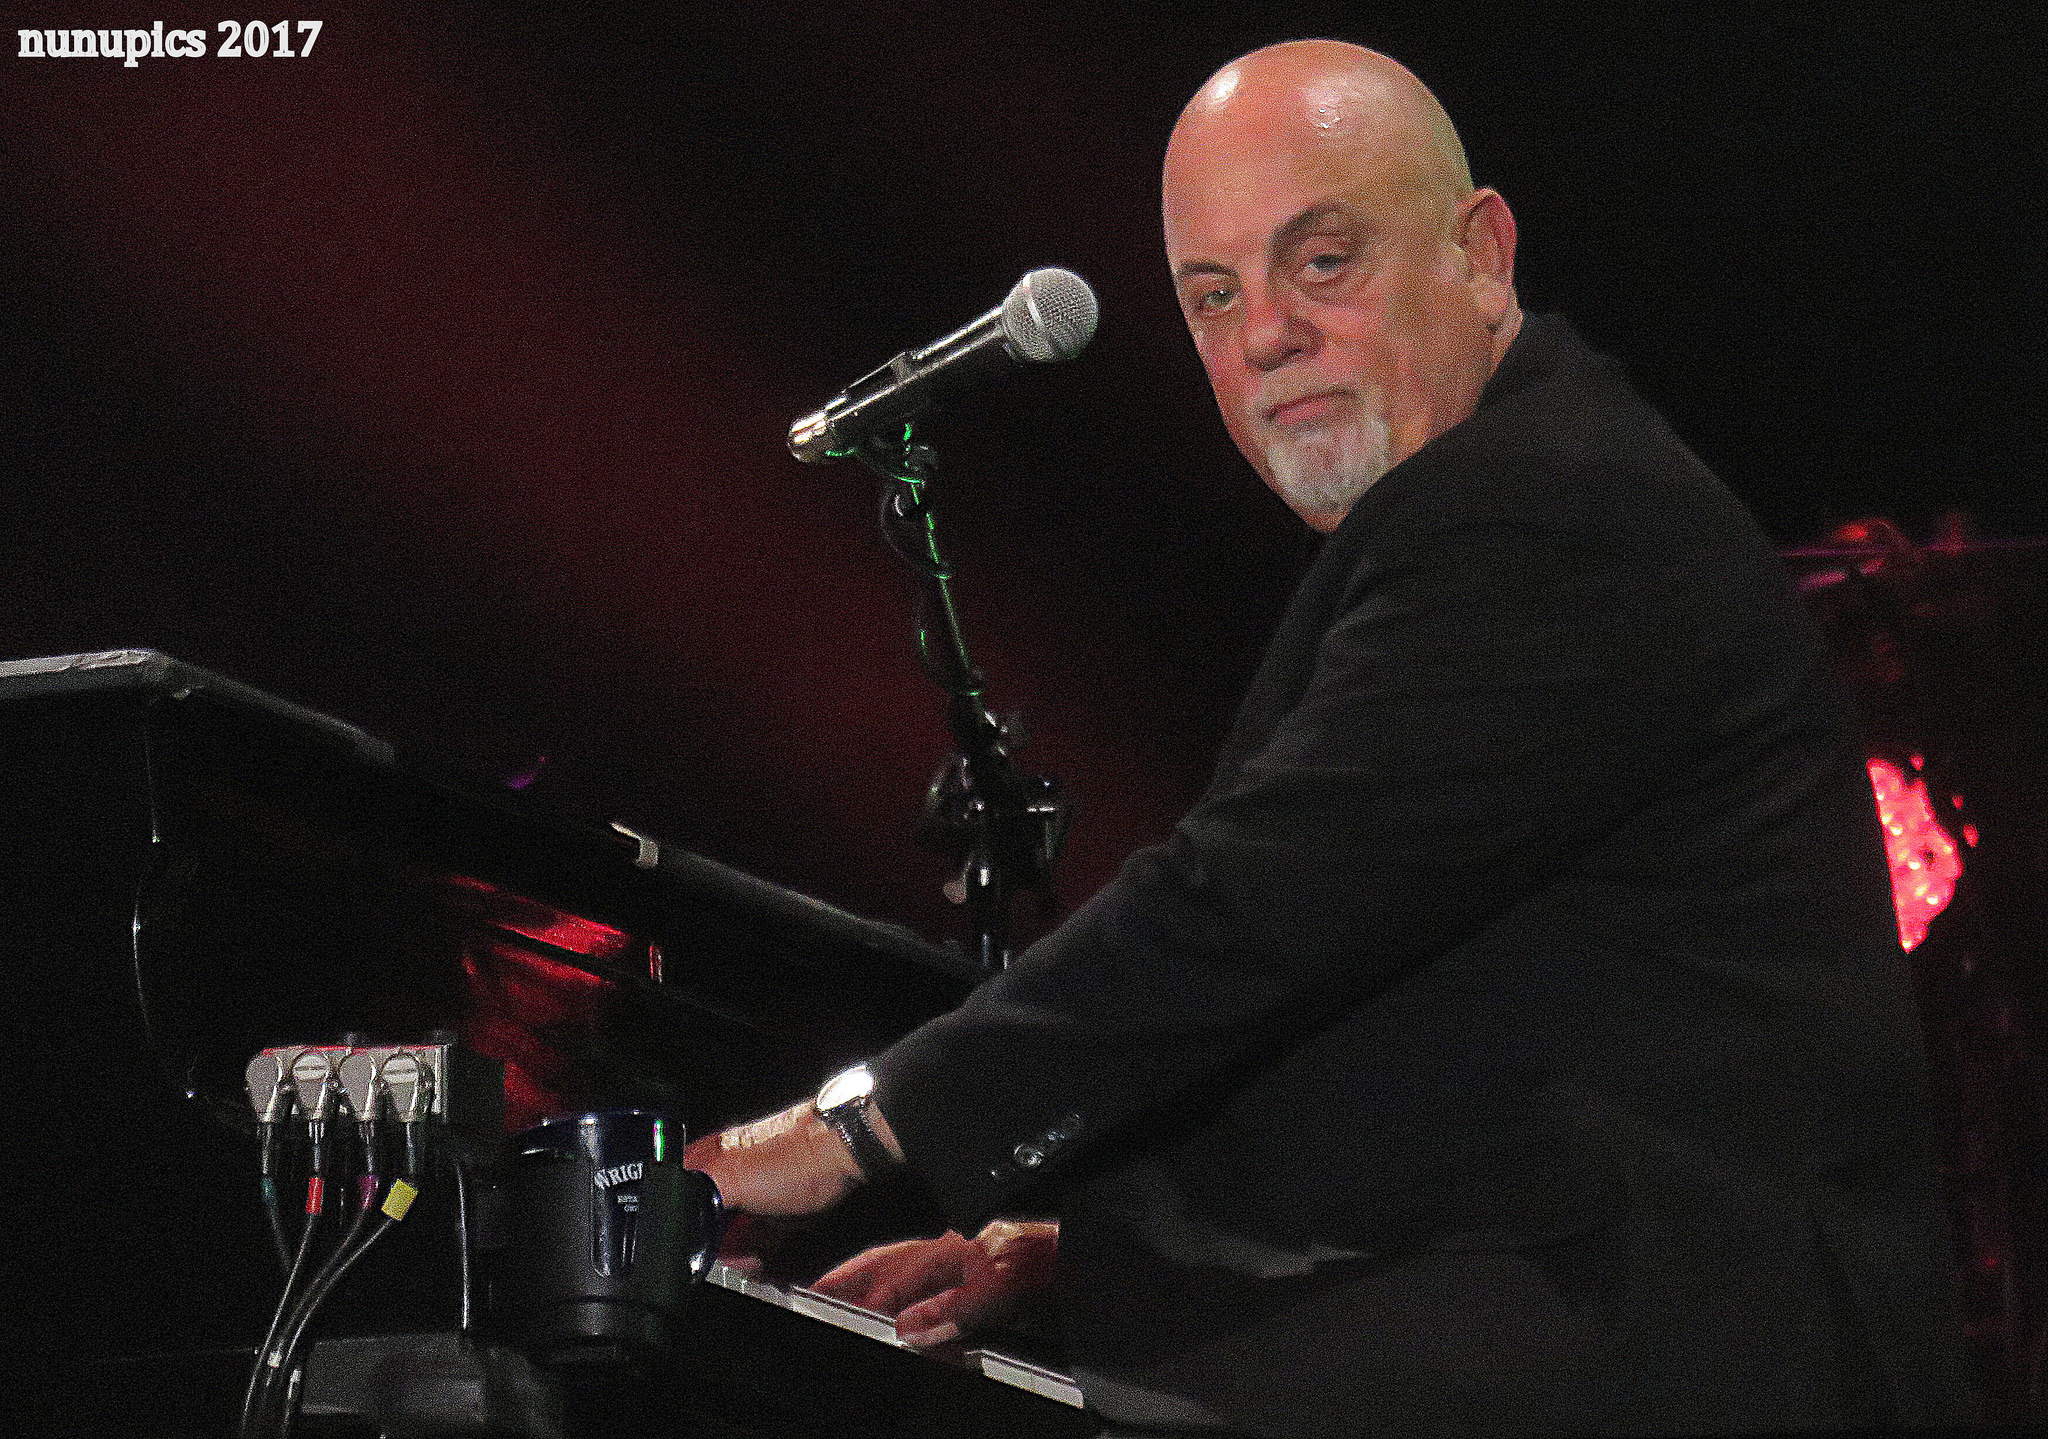 Photos / Video / Setlist | Billy Joel @ Wrigley Field 8/11/17